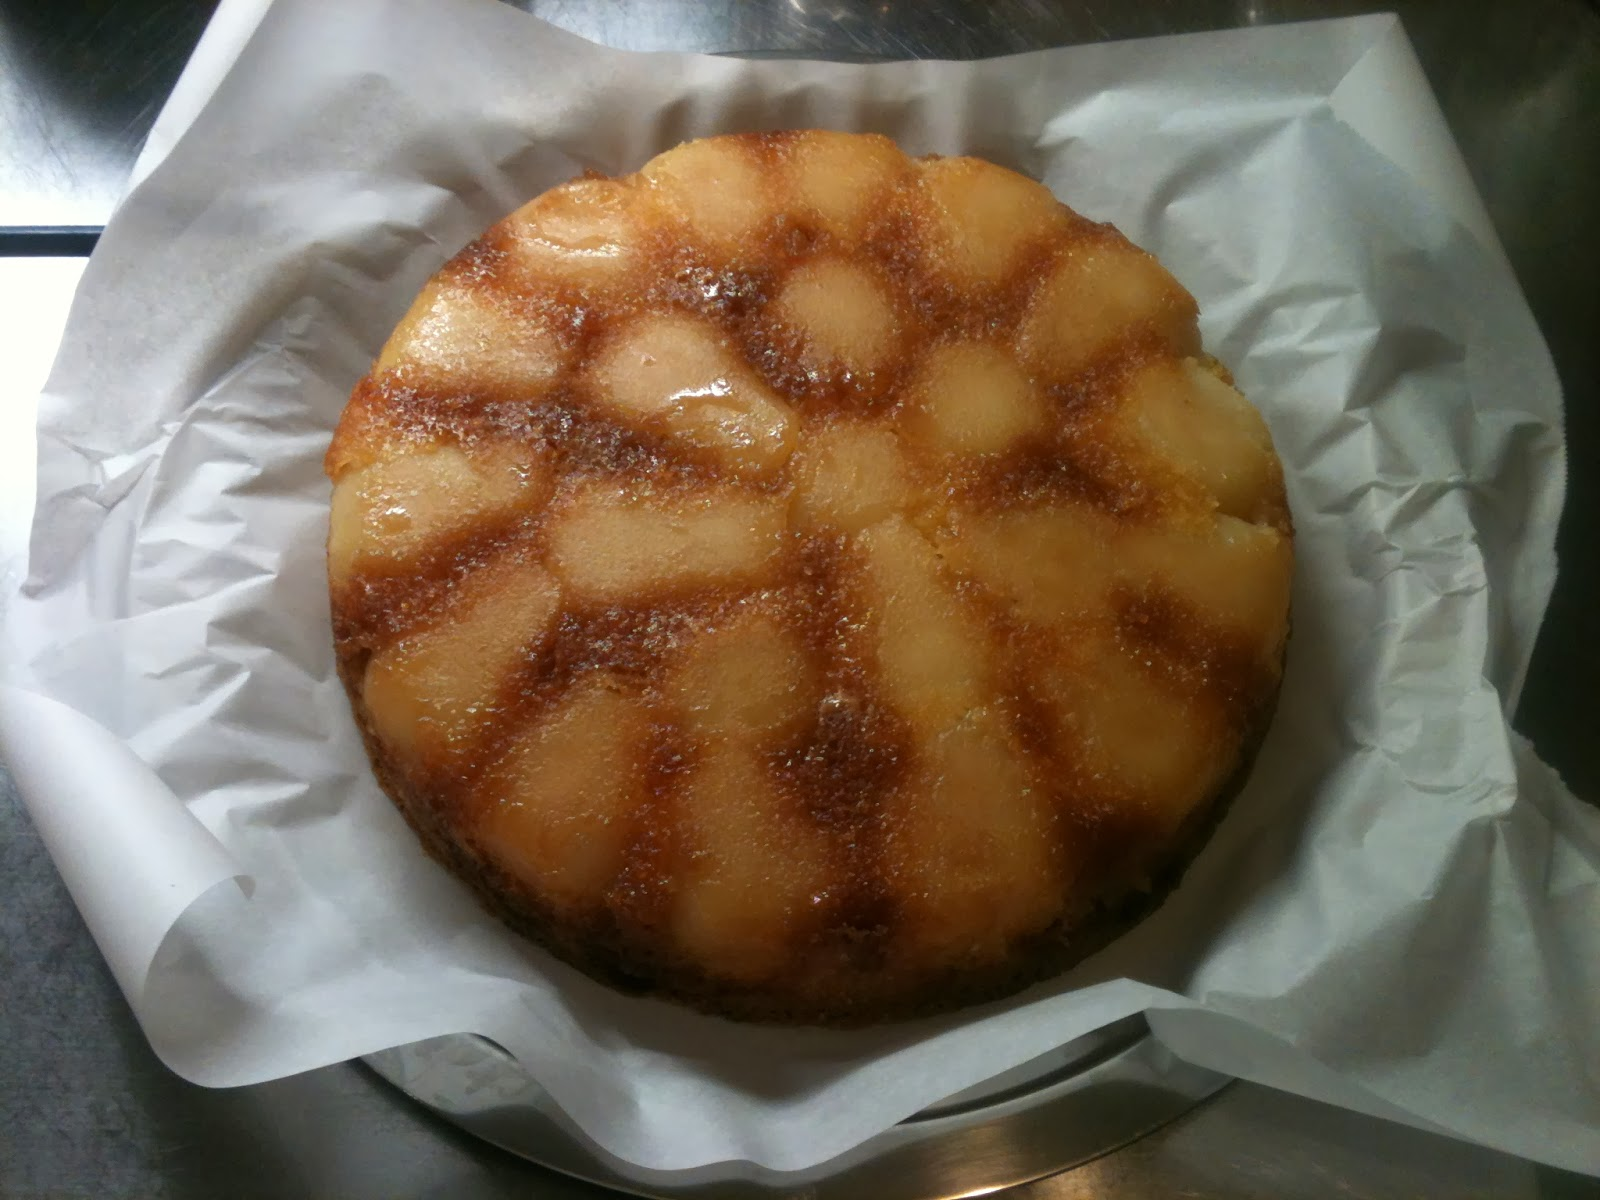 Baked Pear Inside Of Cake